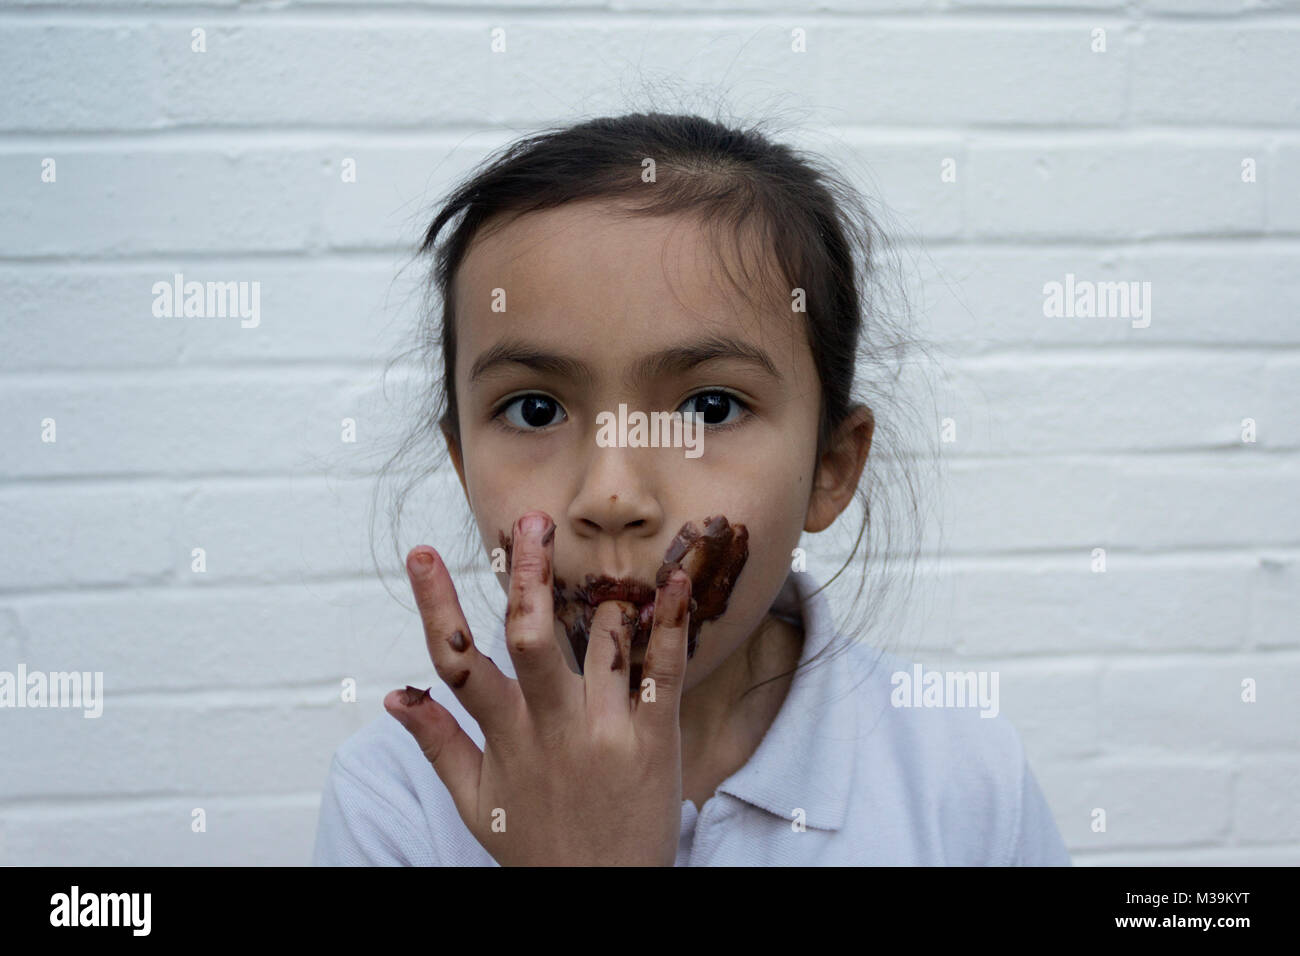 child eating chocolate with mess on face - Stock Image